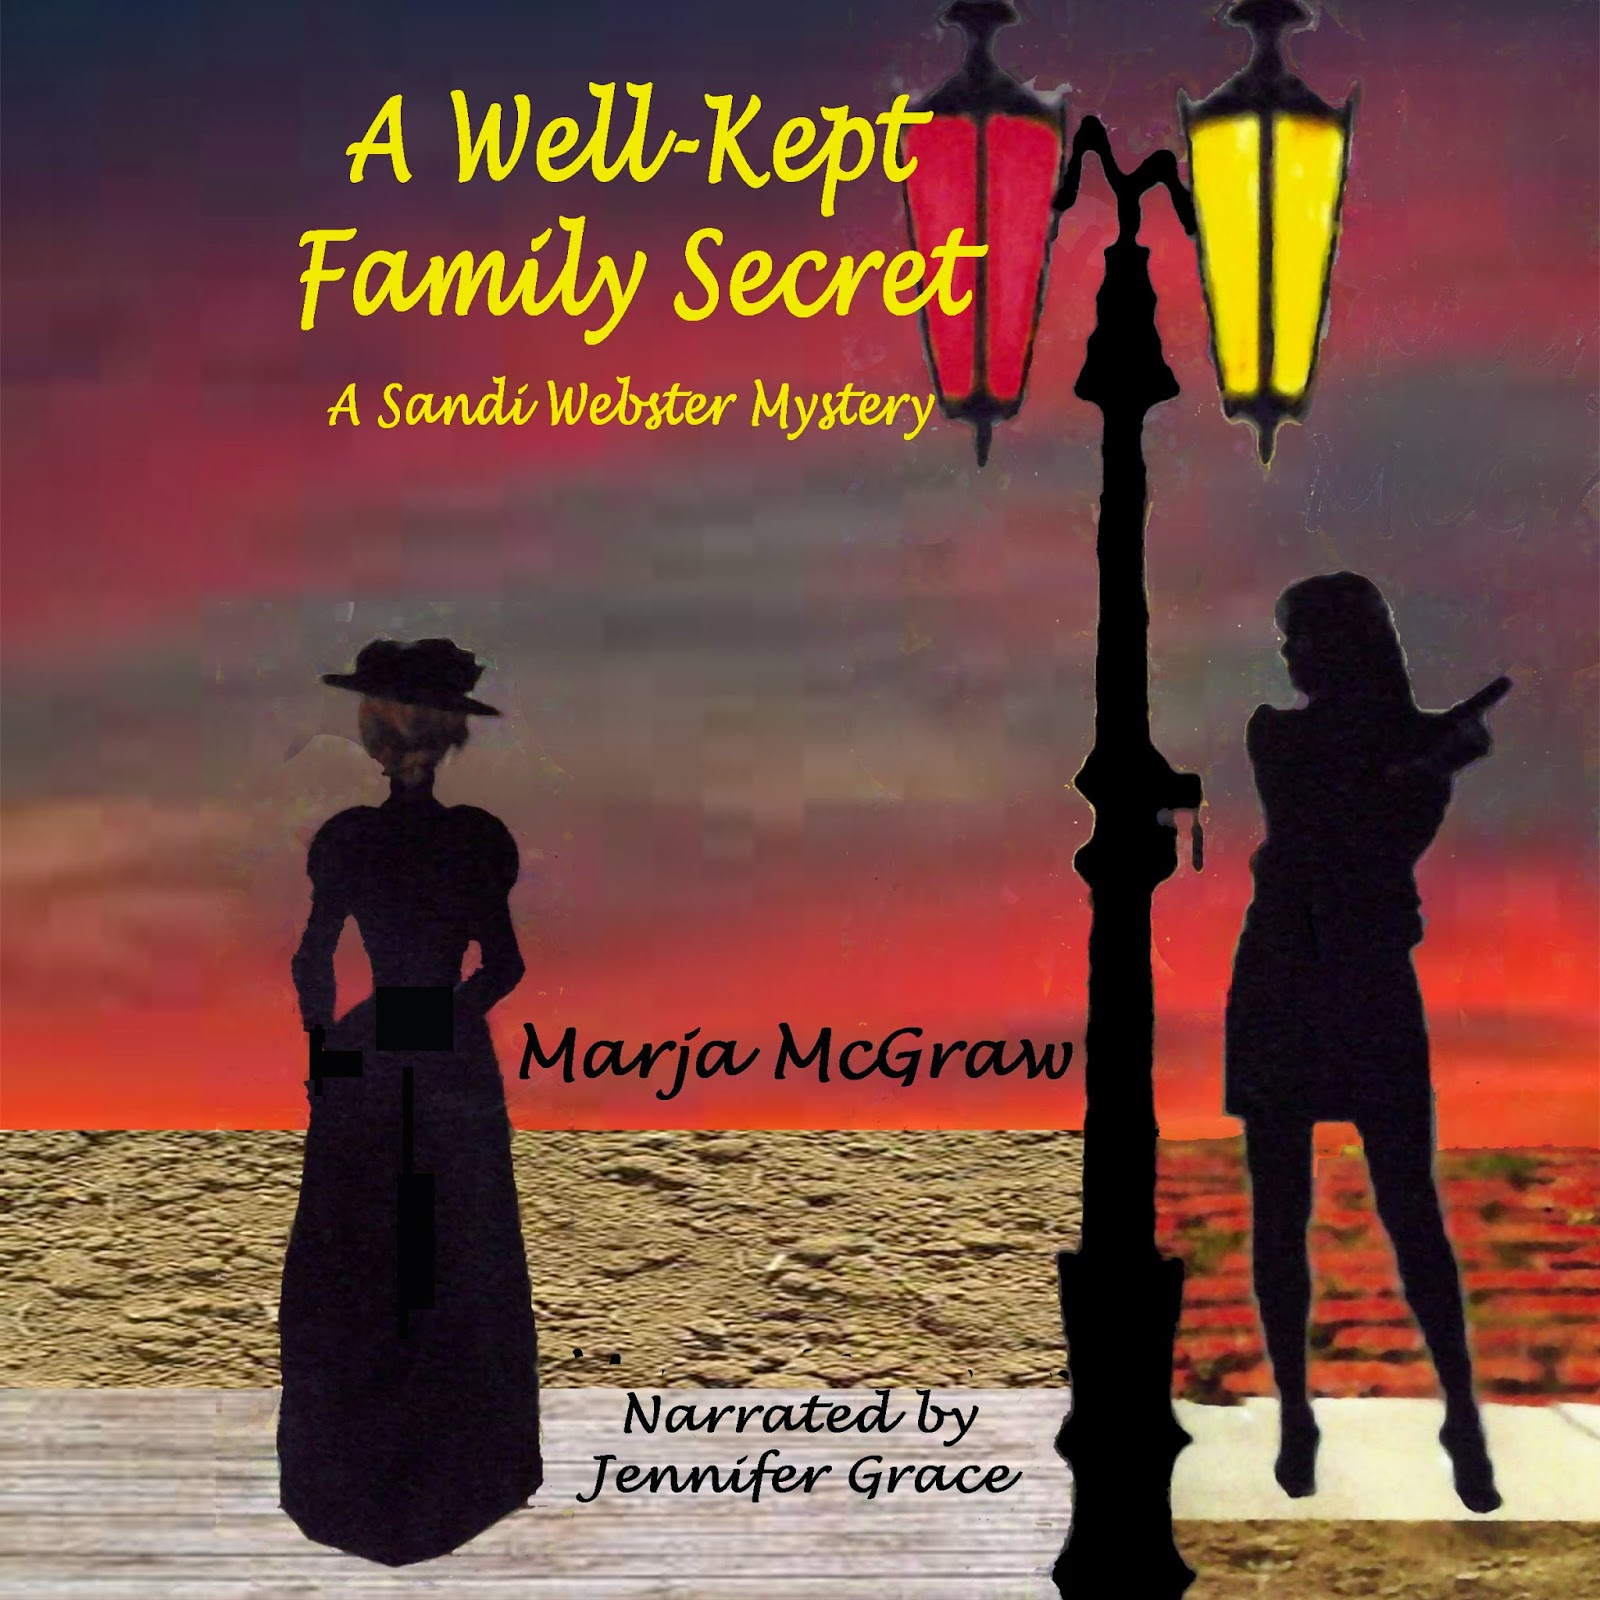 http://www.amazon.com/Well-Kept-Family-Secret-Webster-Mystery/dp/B00NIY2H2Y/ref=sr_1_7_twi_3?s=books&ie=UTF8&qid=1413053635&sr=1-7&keywords=marja+mcgraw